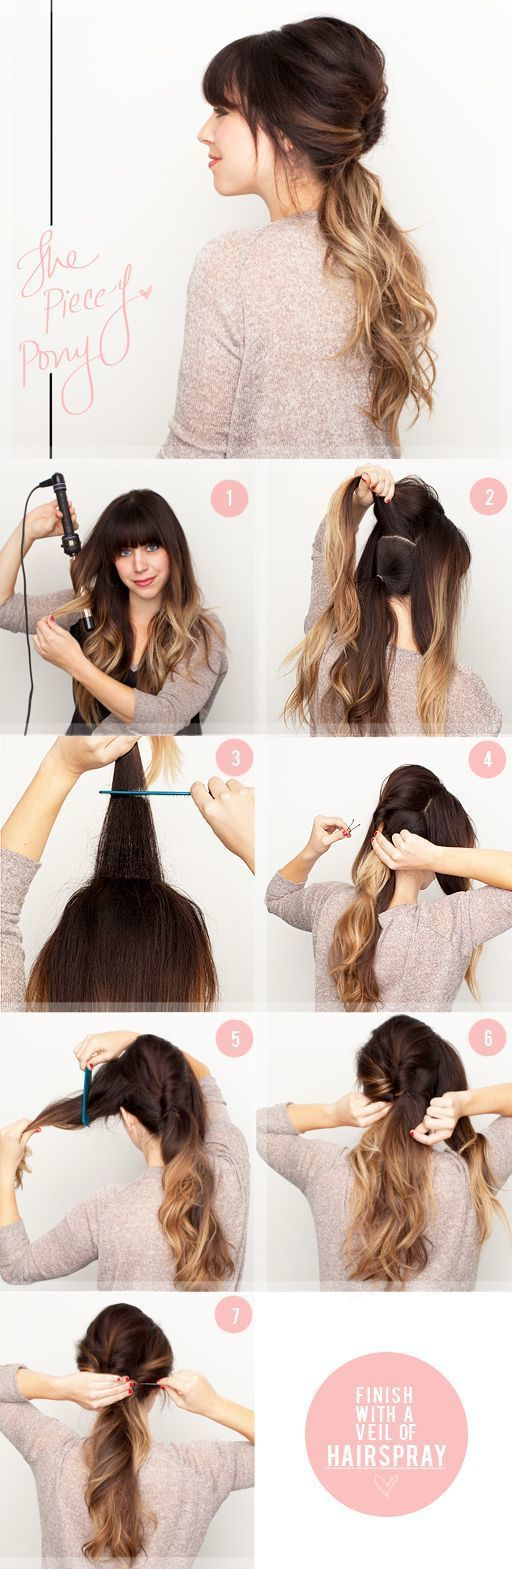 Hairstyle Changer New 20 Easy Hairstyles For Women Who've Got No Time #7 Is A Game